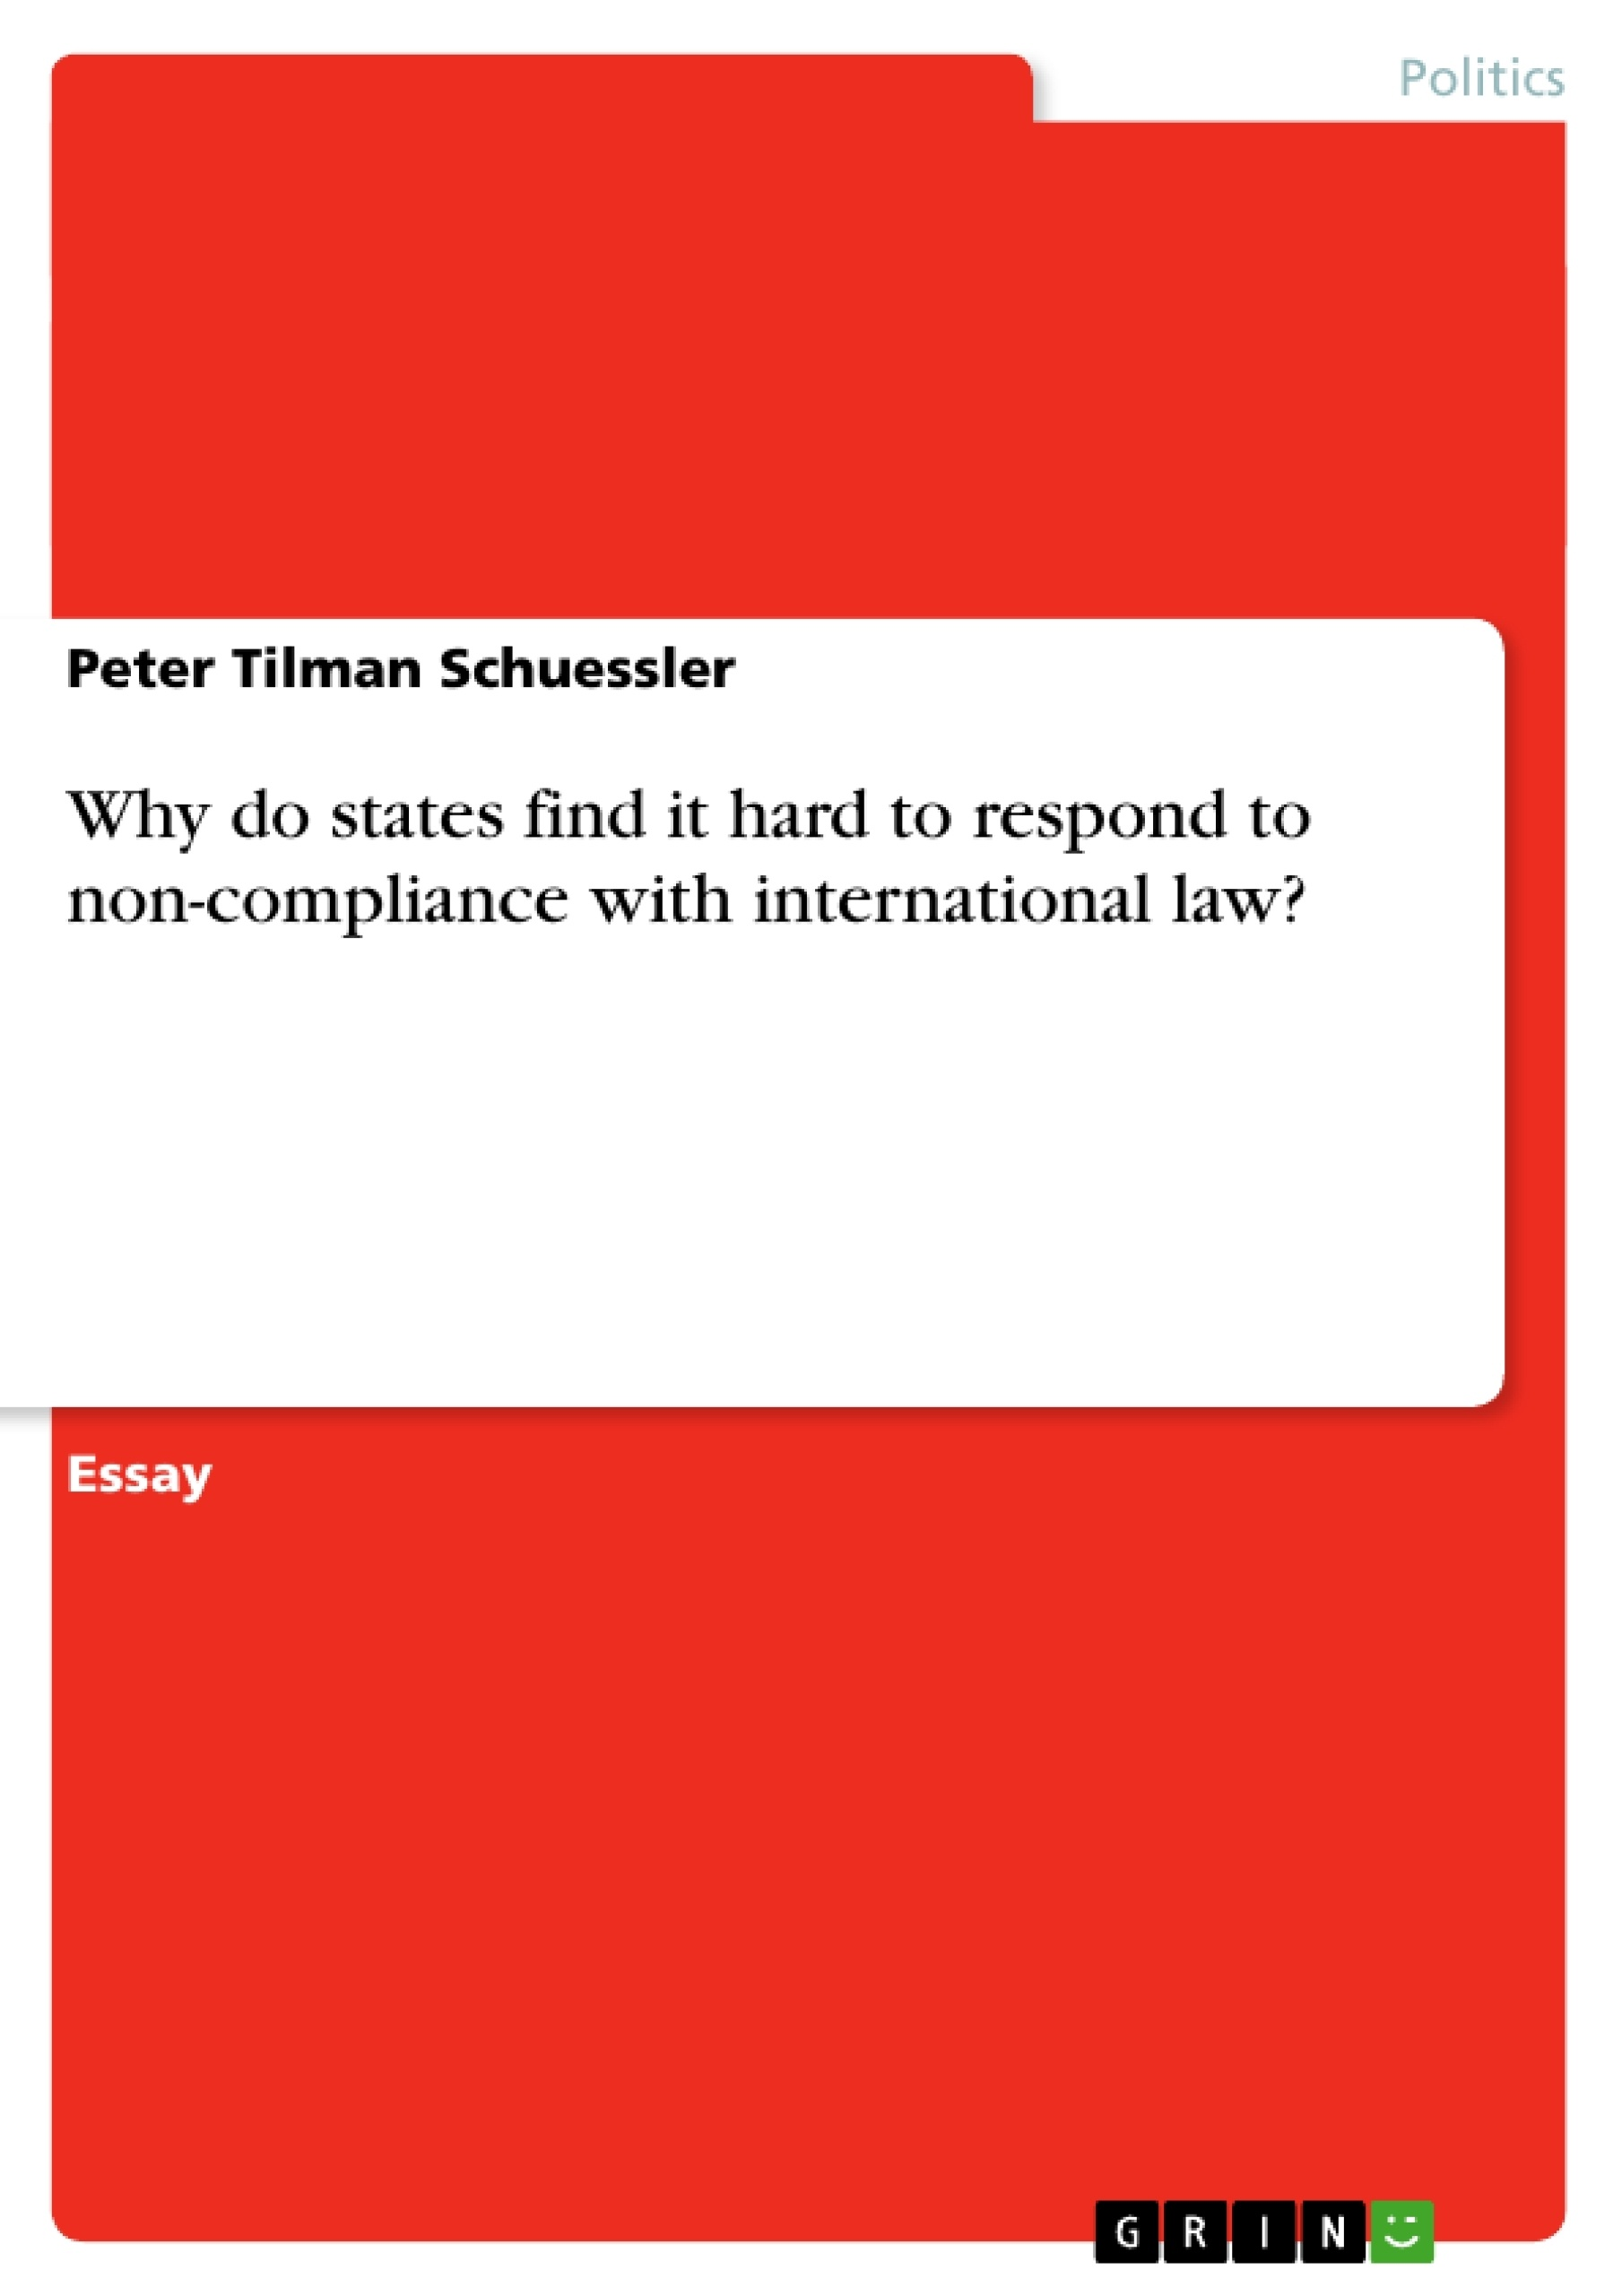 Title: Why do states find it hard to respond to non-compliance with international law?